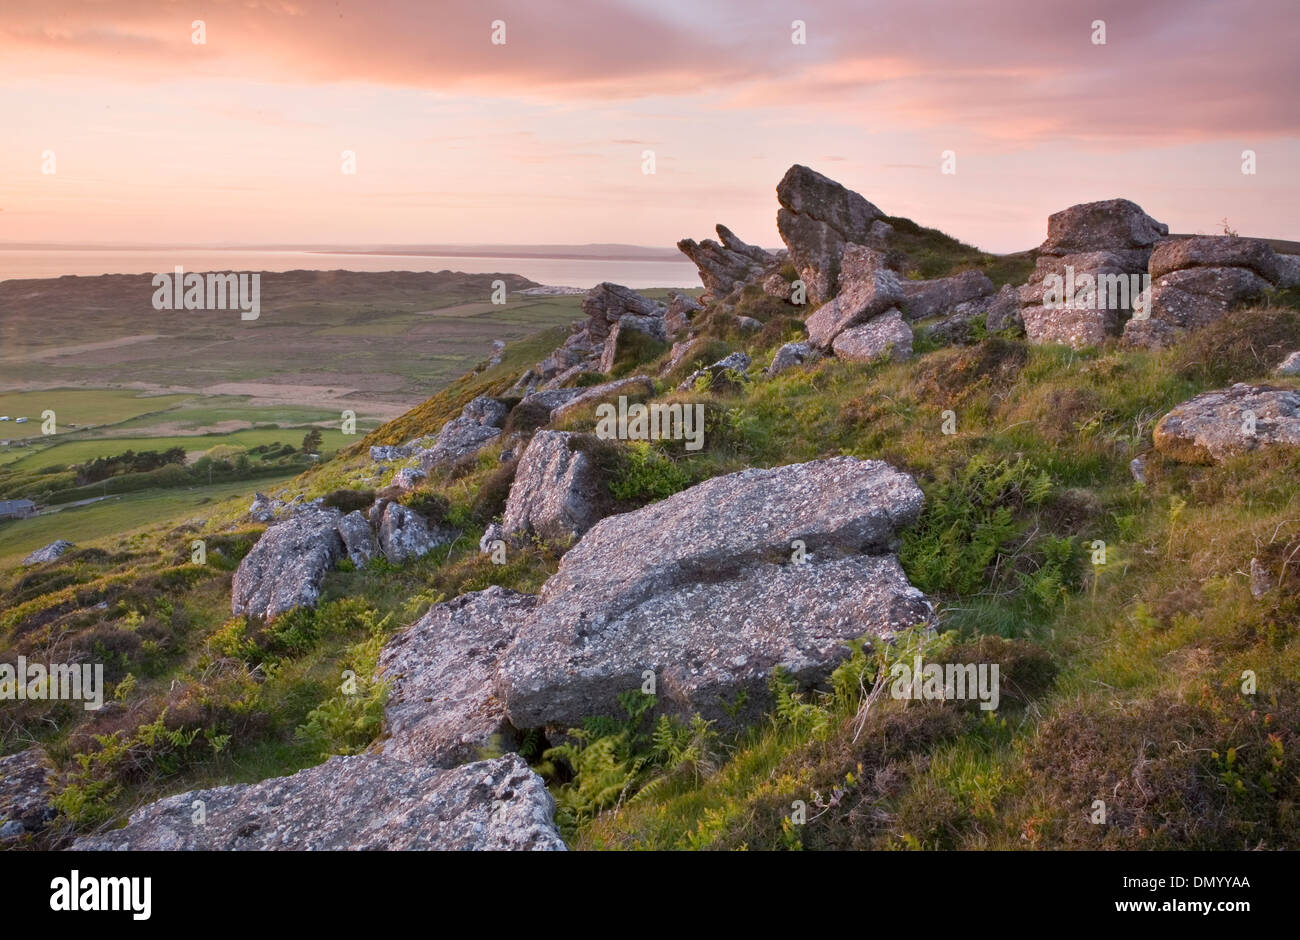 Boulders on the ridge of Rhossili Down near Llangennith, Gower Peninsula, overlook Rhossili Bay at sunset. - Stock Image